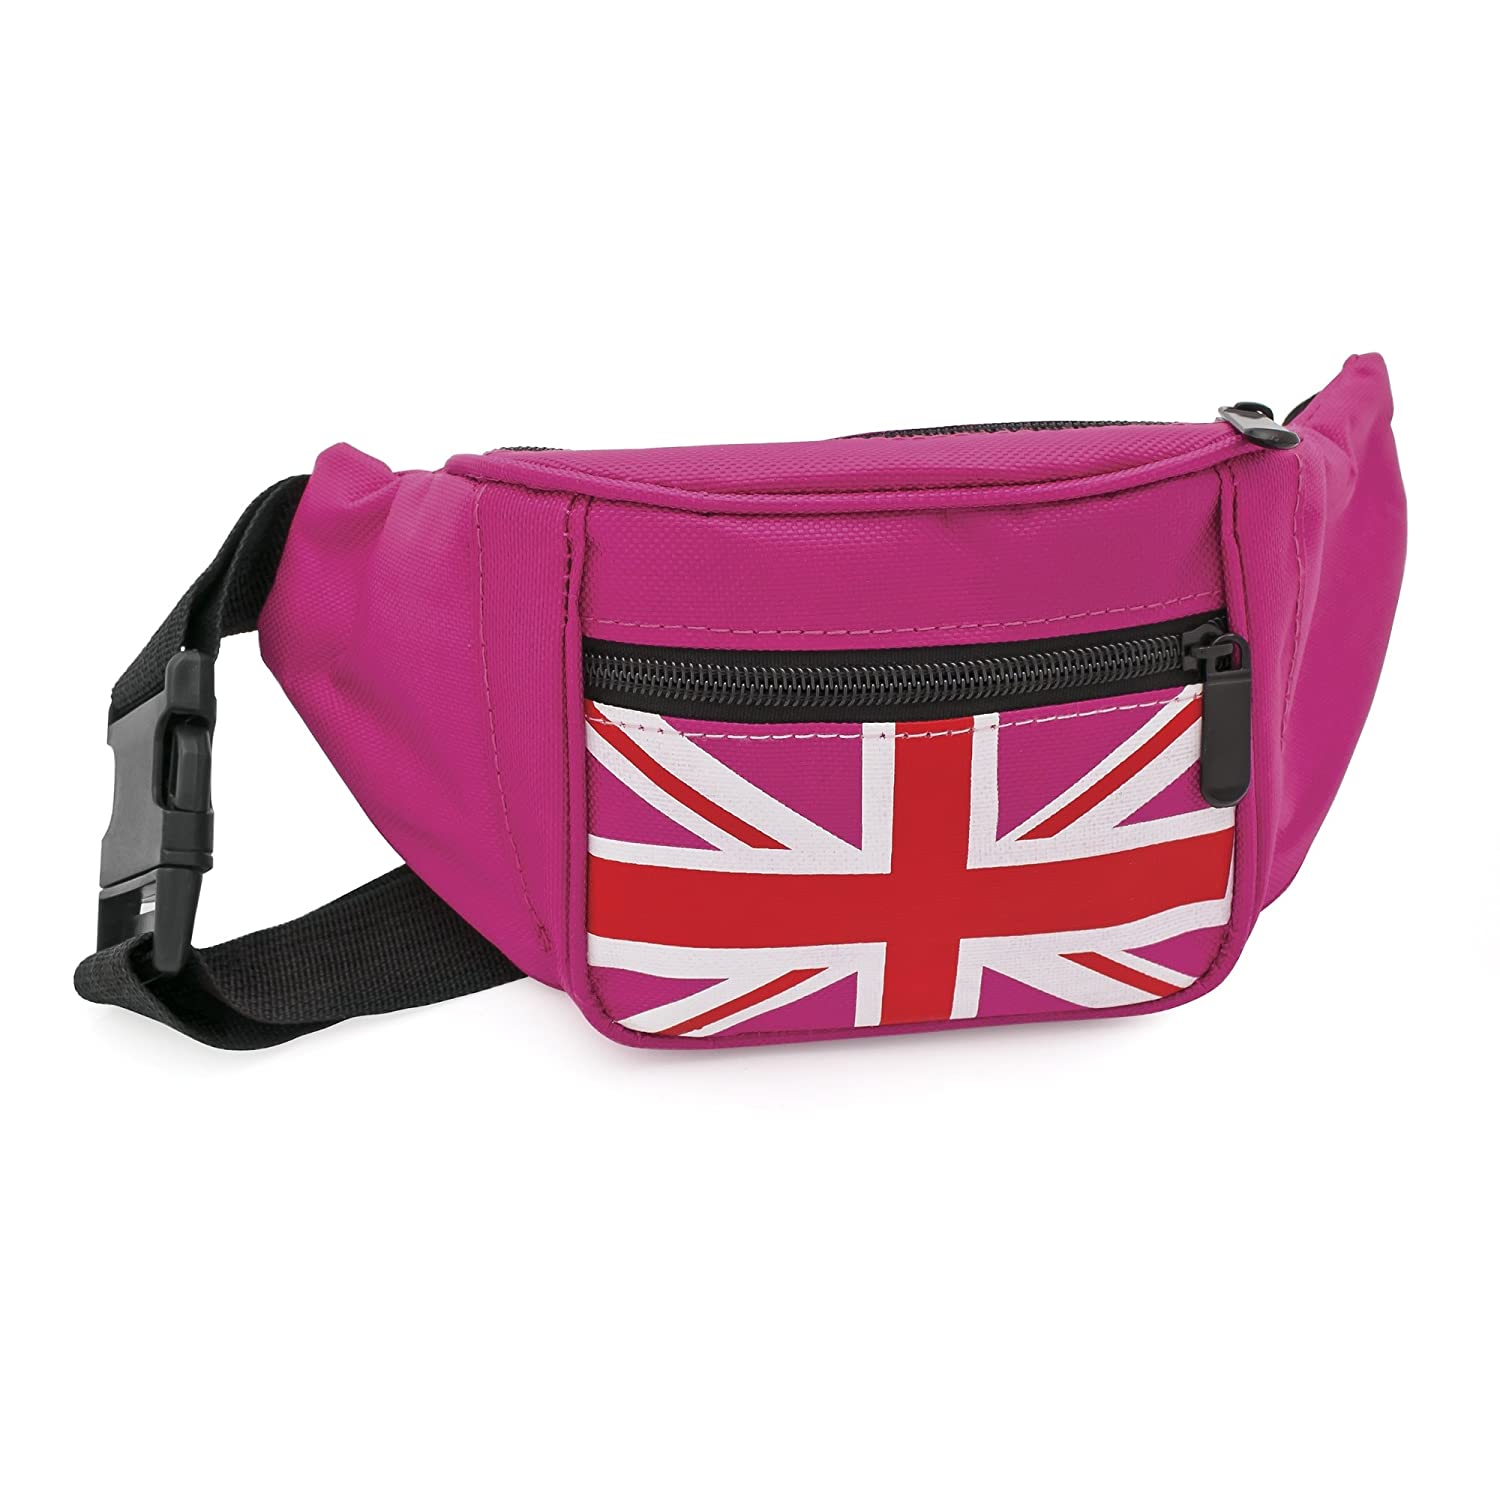 Bum Bag fanny Pack Festival Money Waist Pouch Travel Canvas Belt Grunge Neon (Fuchsia pink Union Jack)